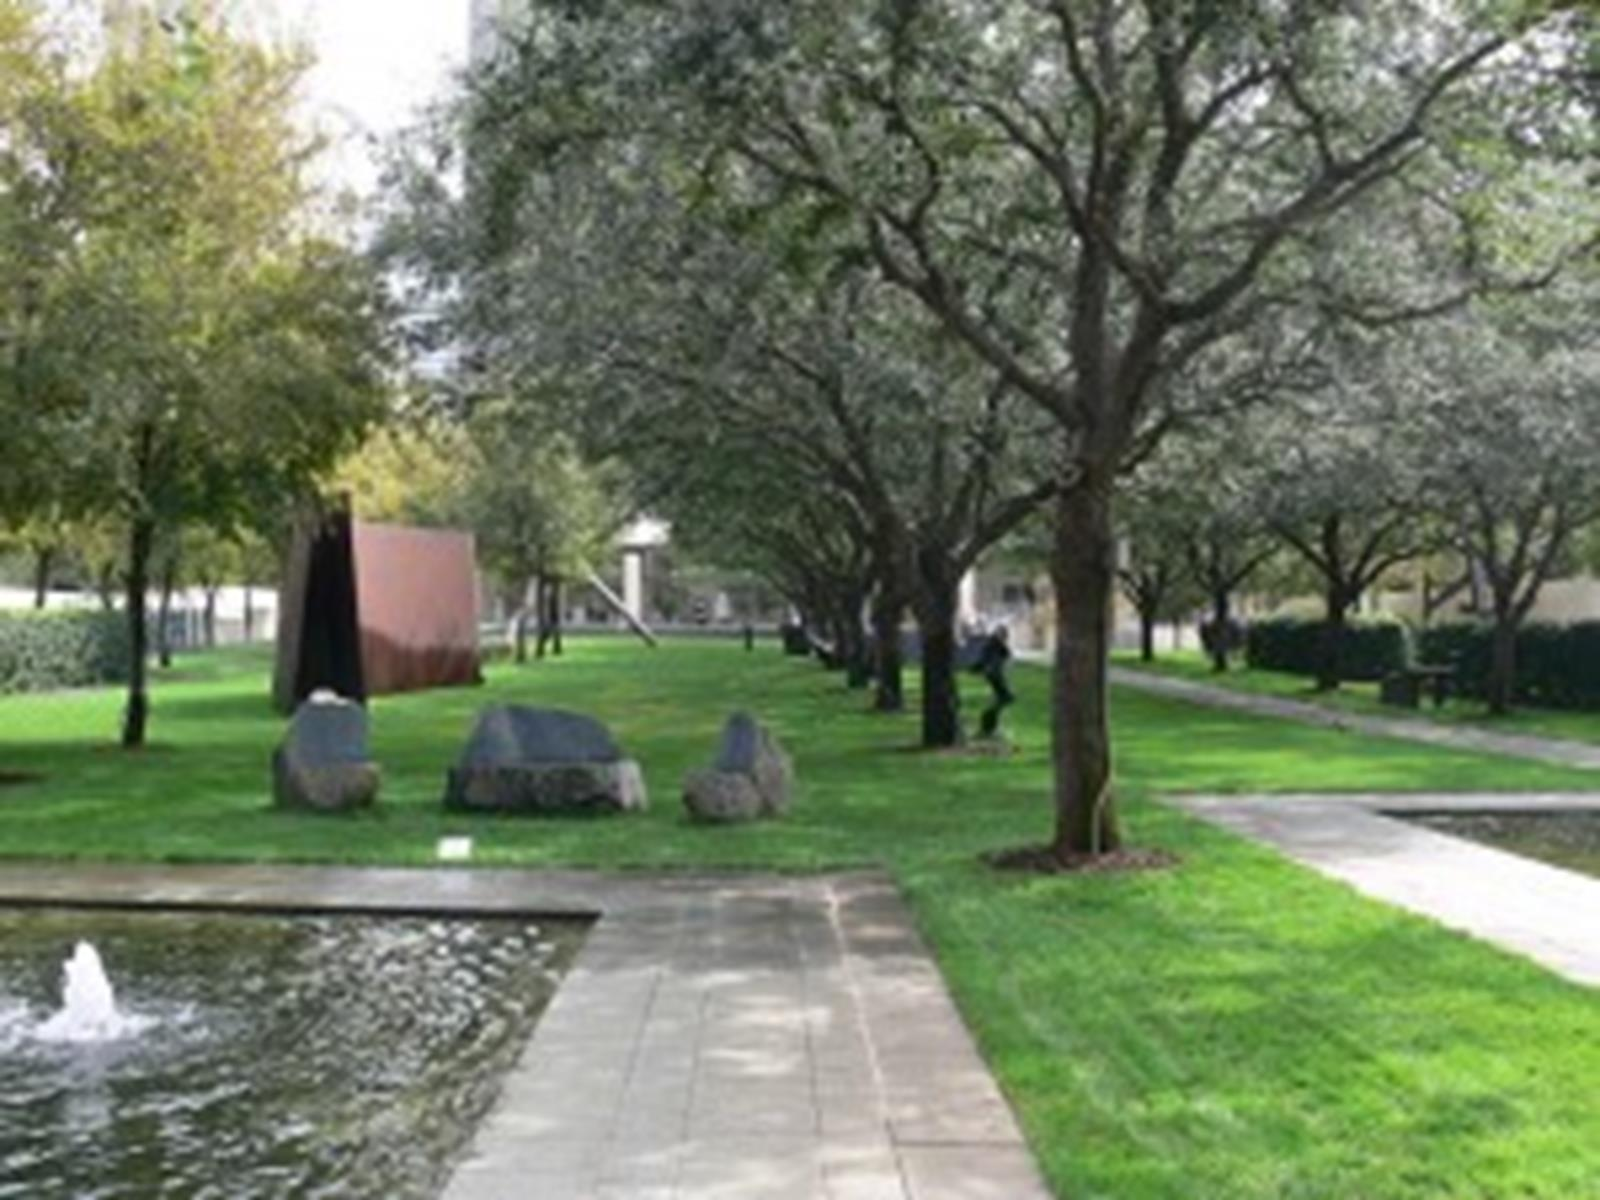 The Nasher Sculpture Garden at the Nasher Sculpture Center